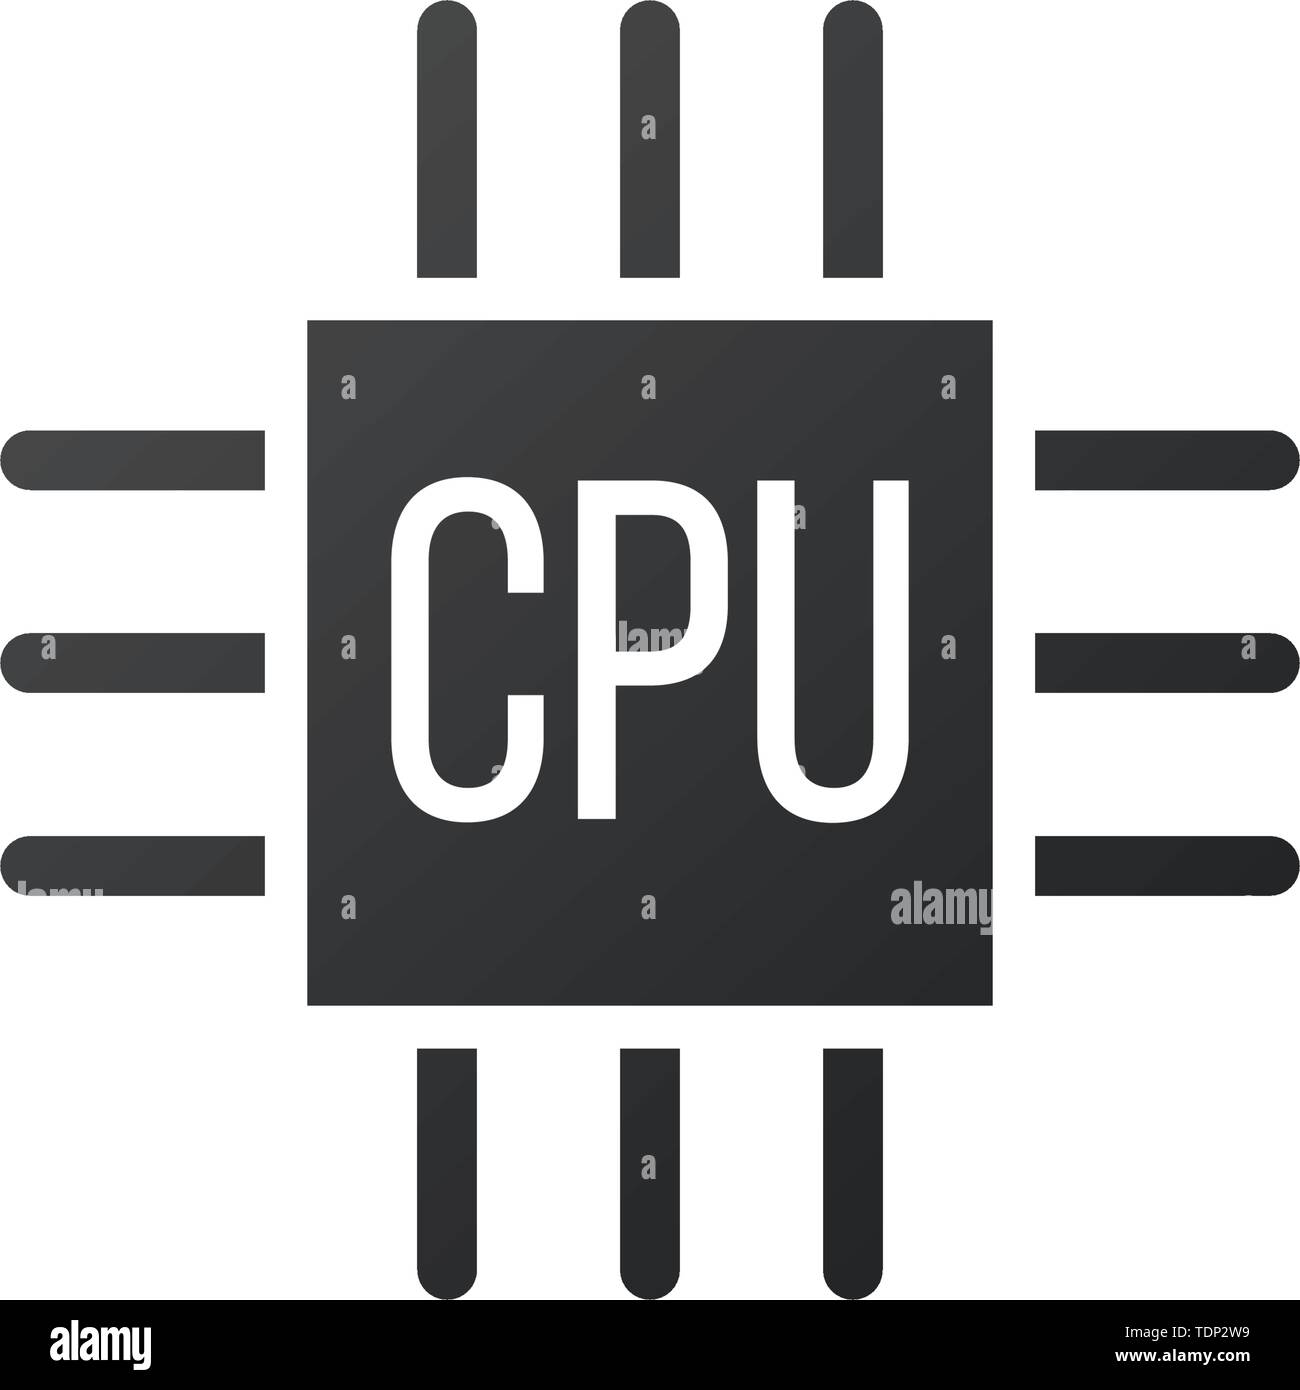 microchip icon cpu central processing unit computer processor chip symbol abstract technology logo vector illustration isolated on white stock vector image art alamy alamy